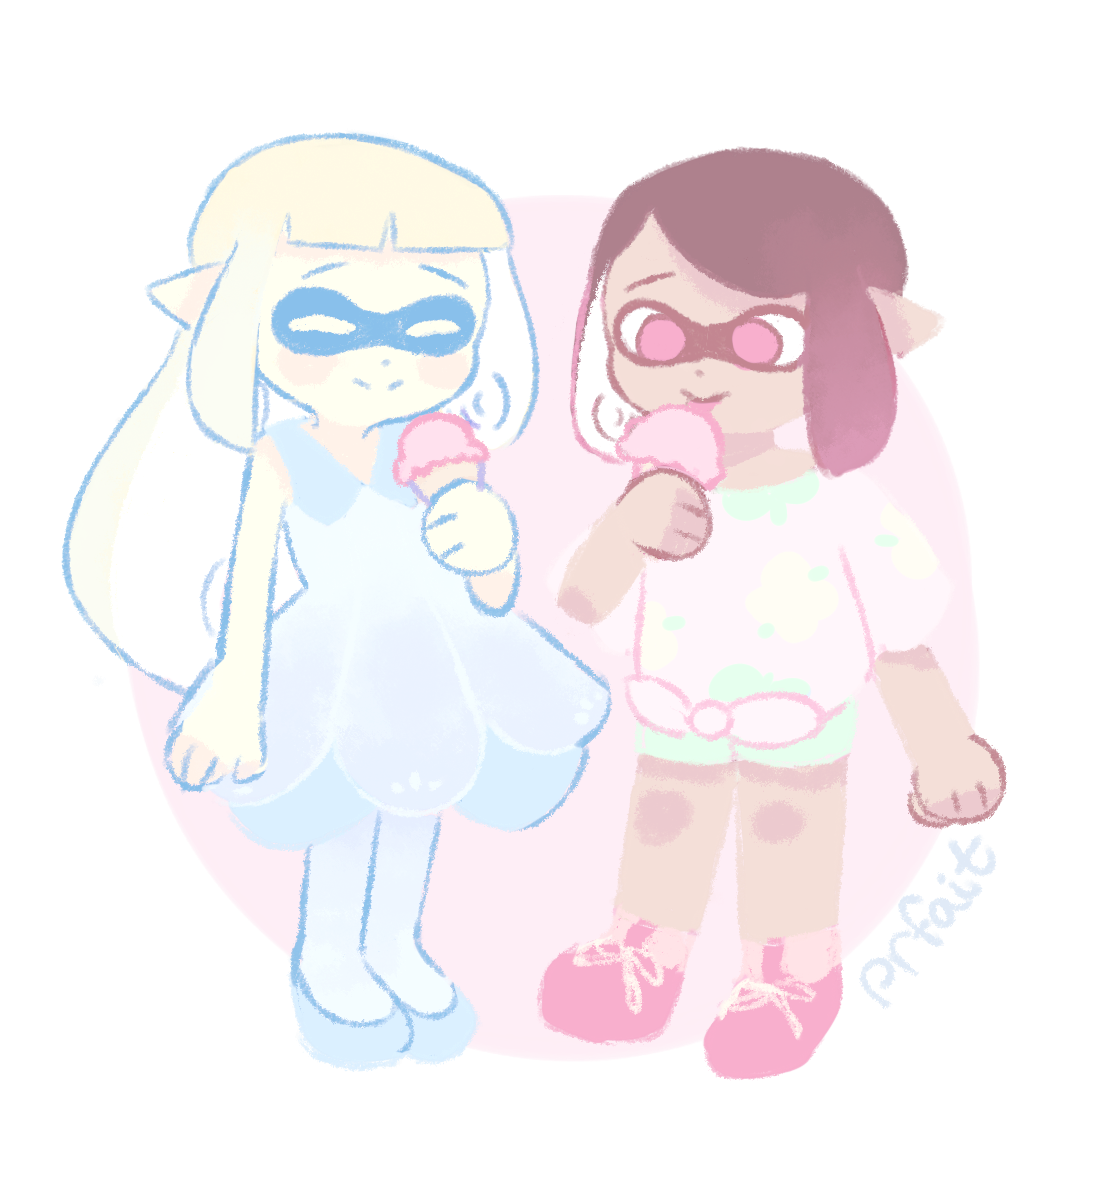 you're a squid now you're a pokemon trainer now